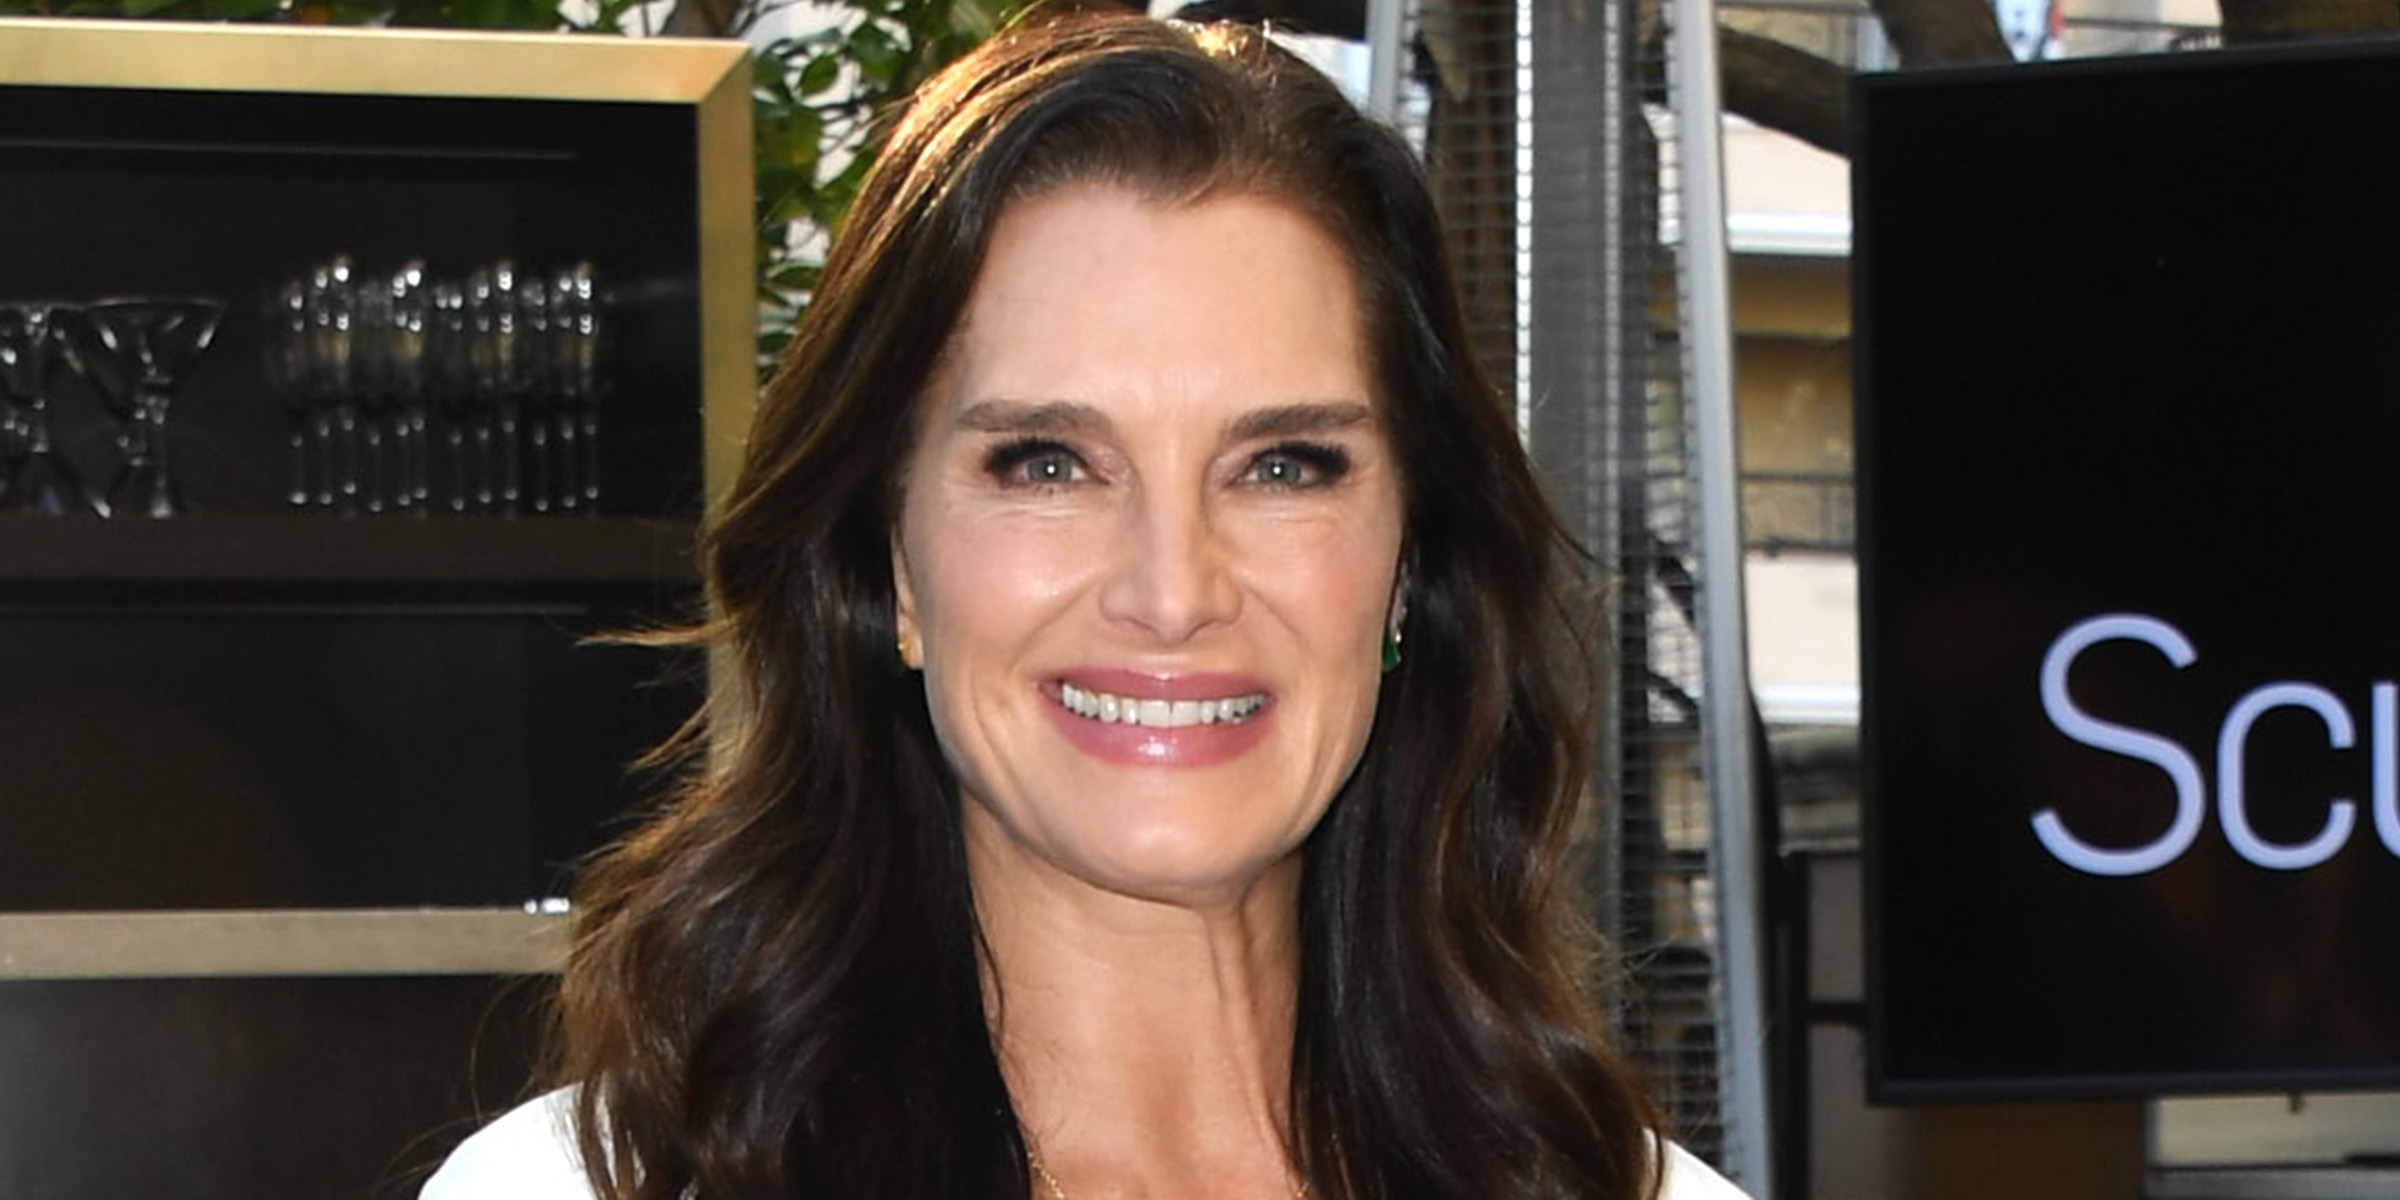 Brooke Shields revealed her favorite beauty products